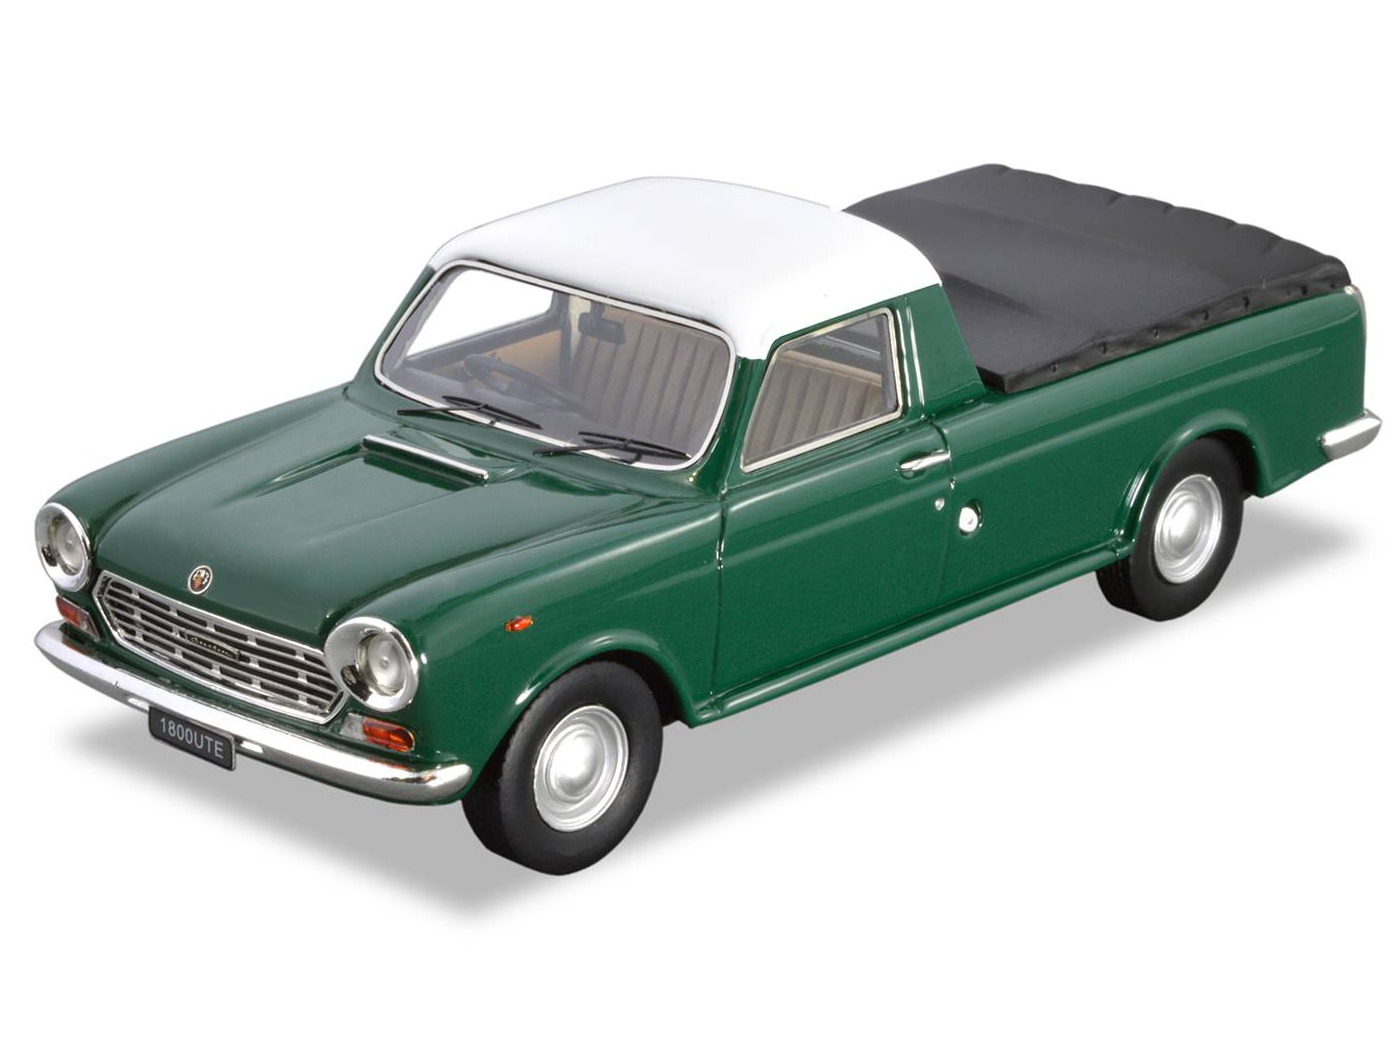 1968 Austin 1800 MKII Ute  – Green / White Roof